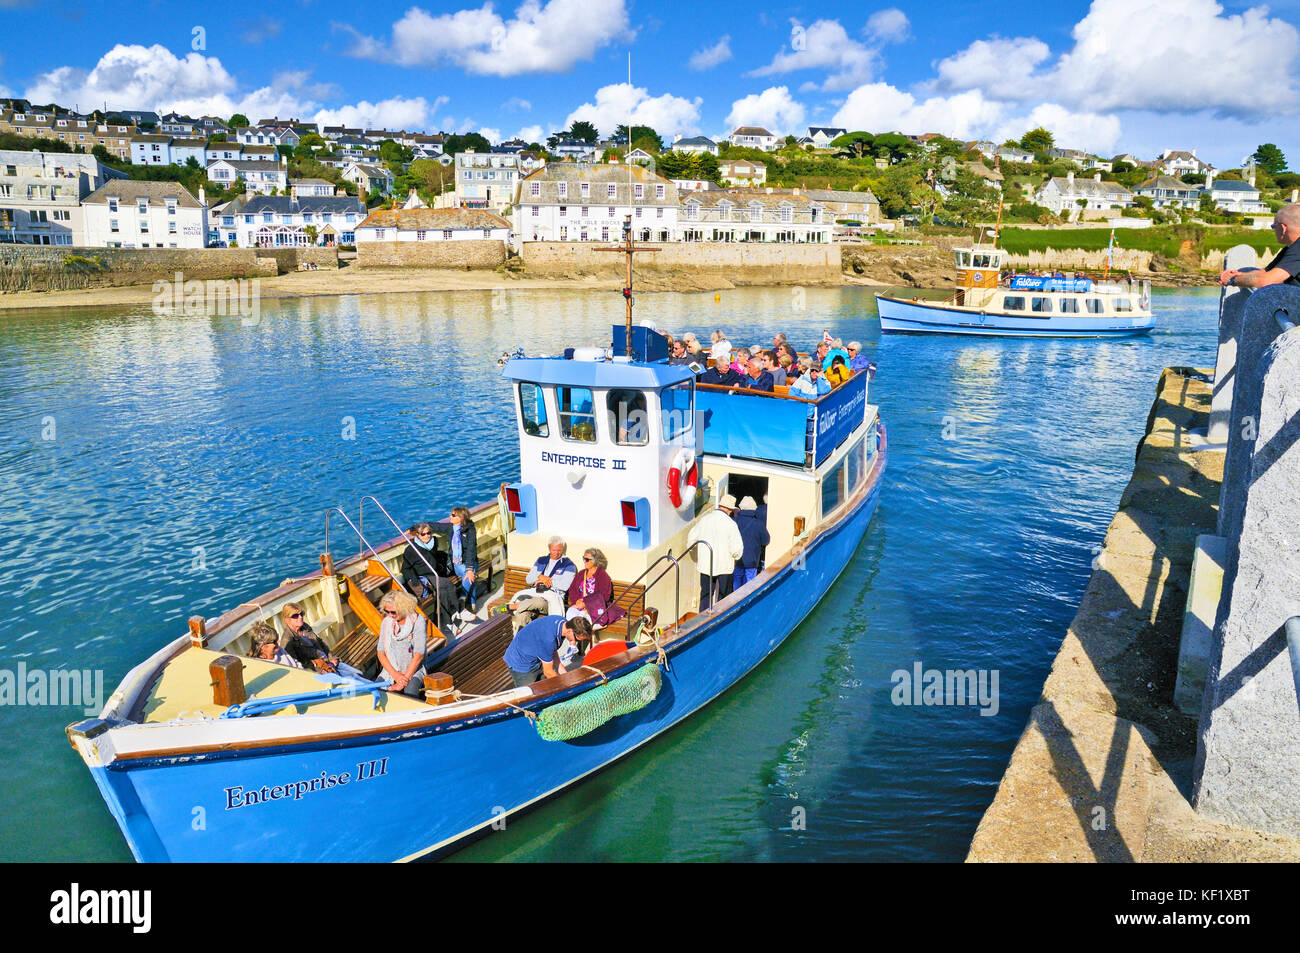 Tourists on a boat trip at St Mawes, Roseland Peninsula, Cornwall, UK - Stock Image